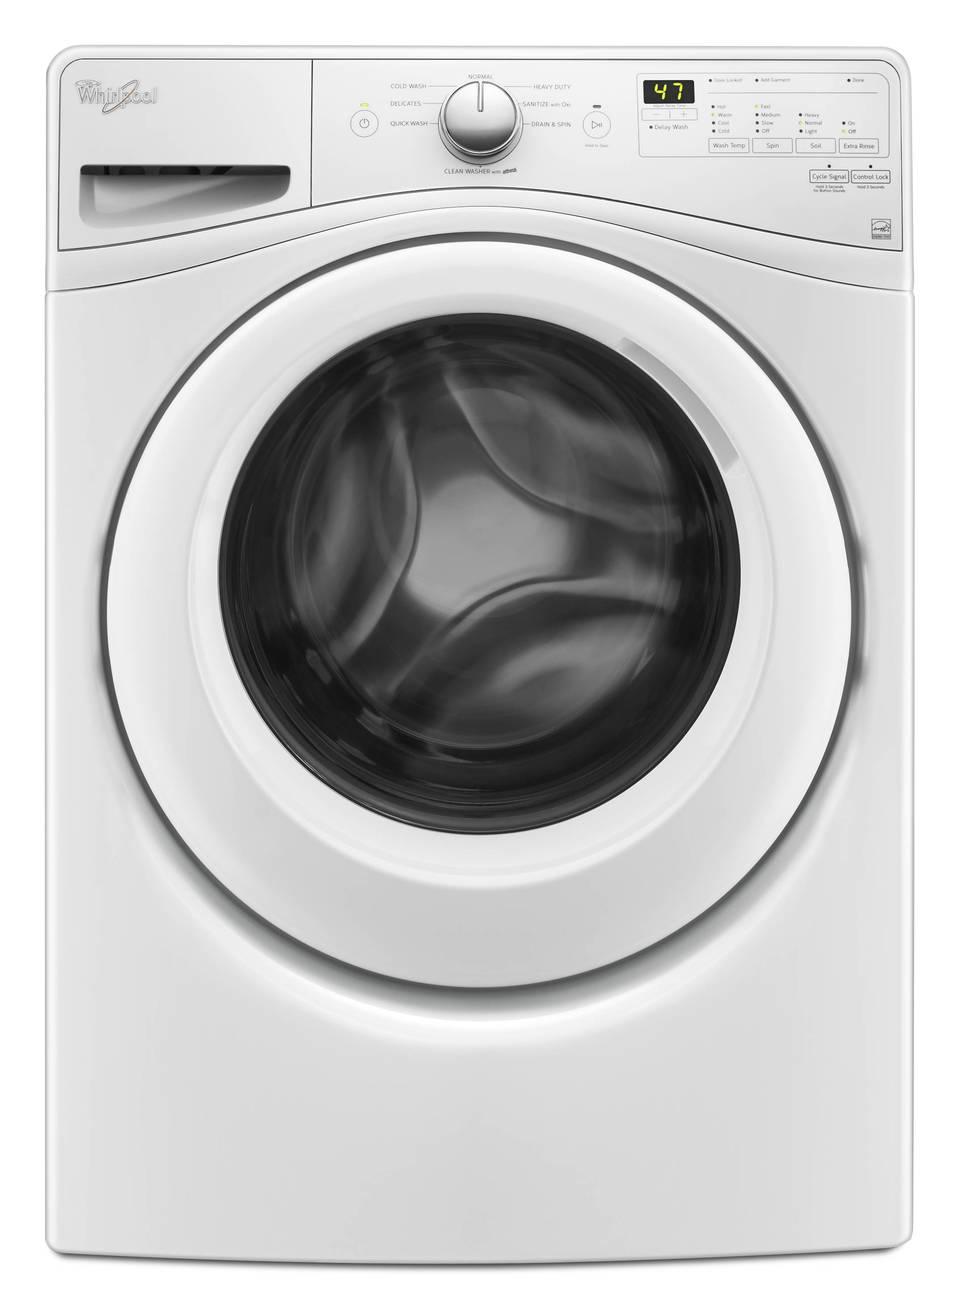 The best top load washer on the market - Whirlpool Front Loading 4 5 Cubic Foot Washer